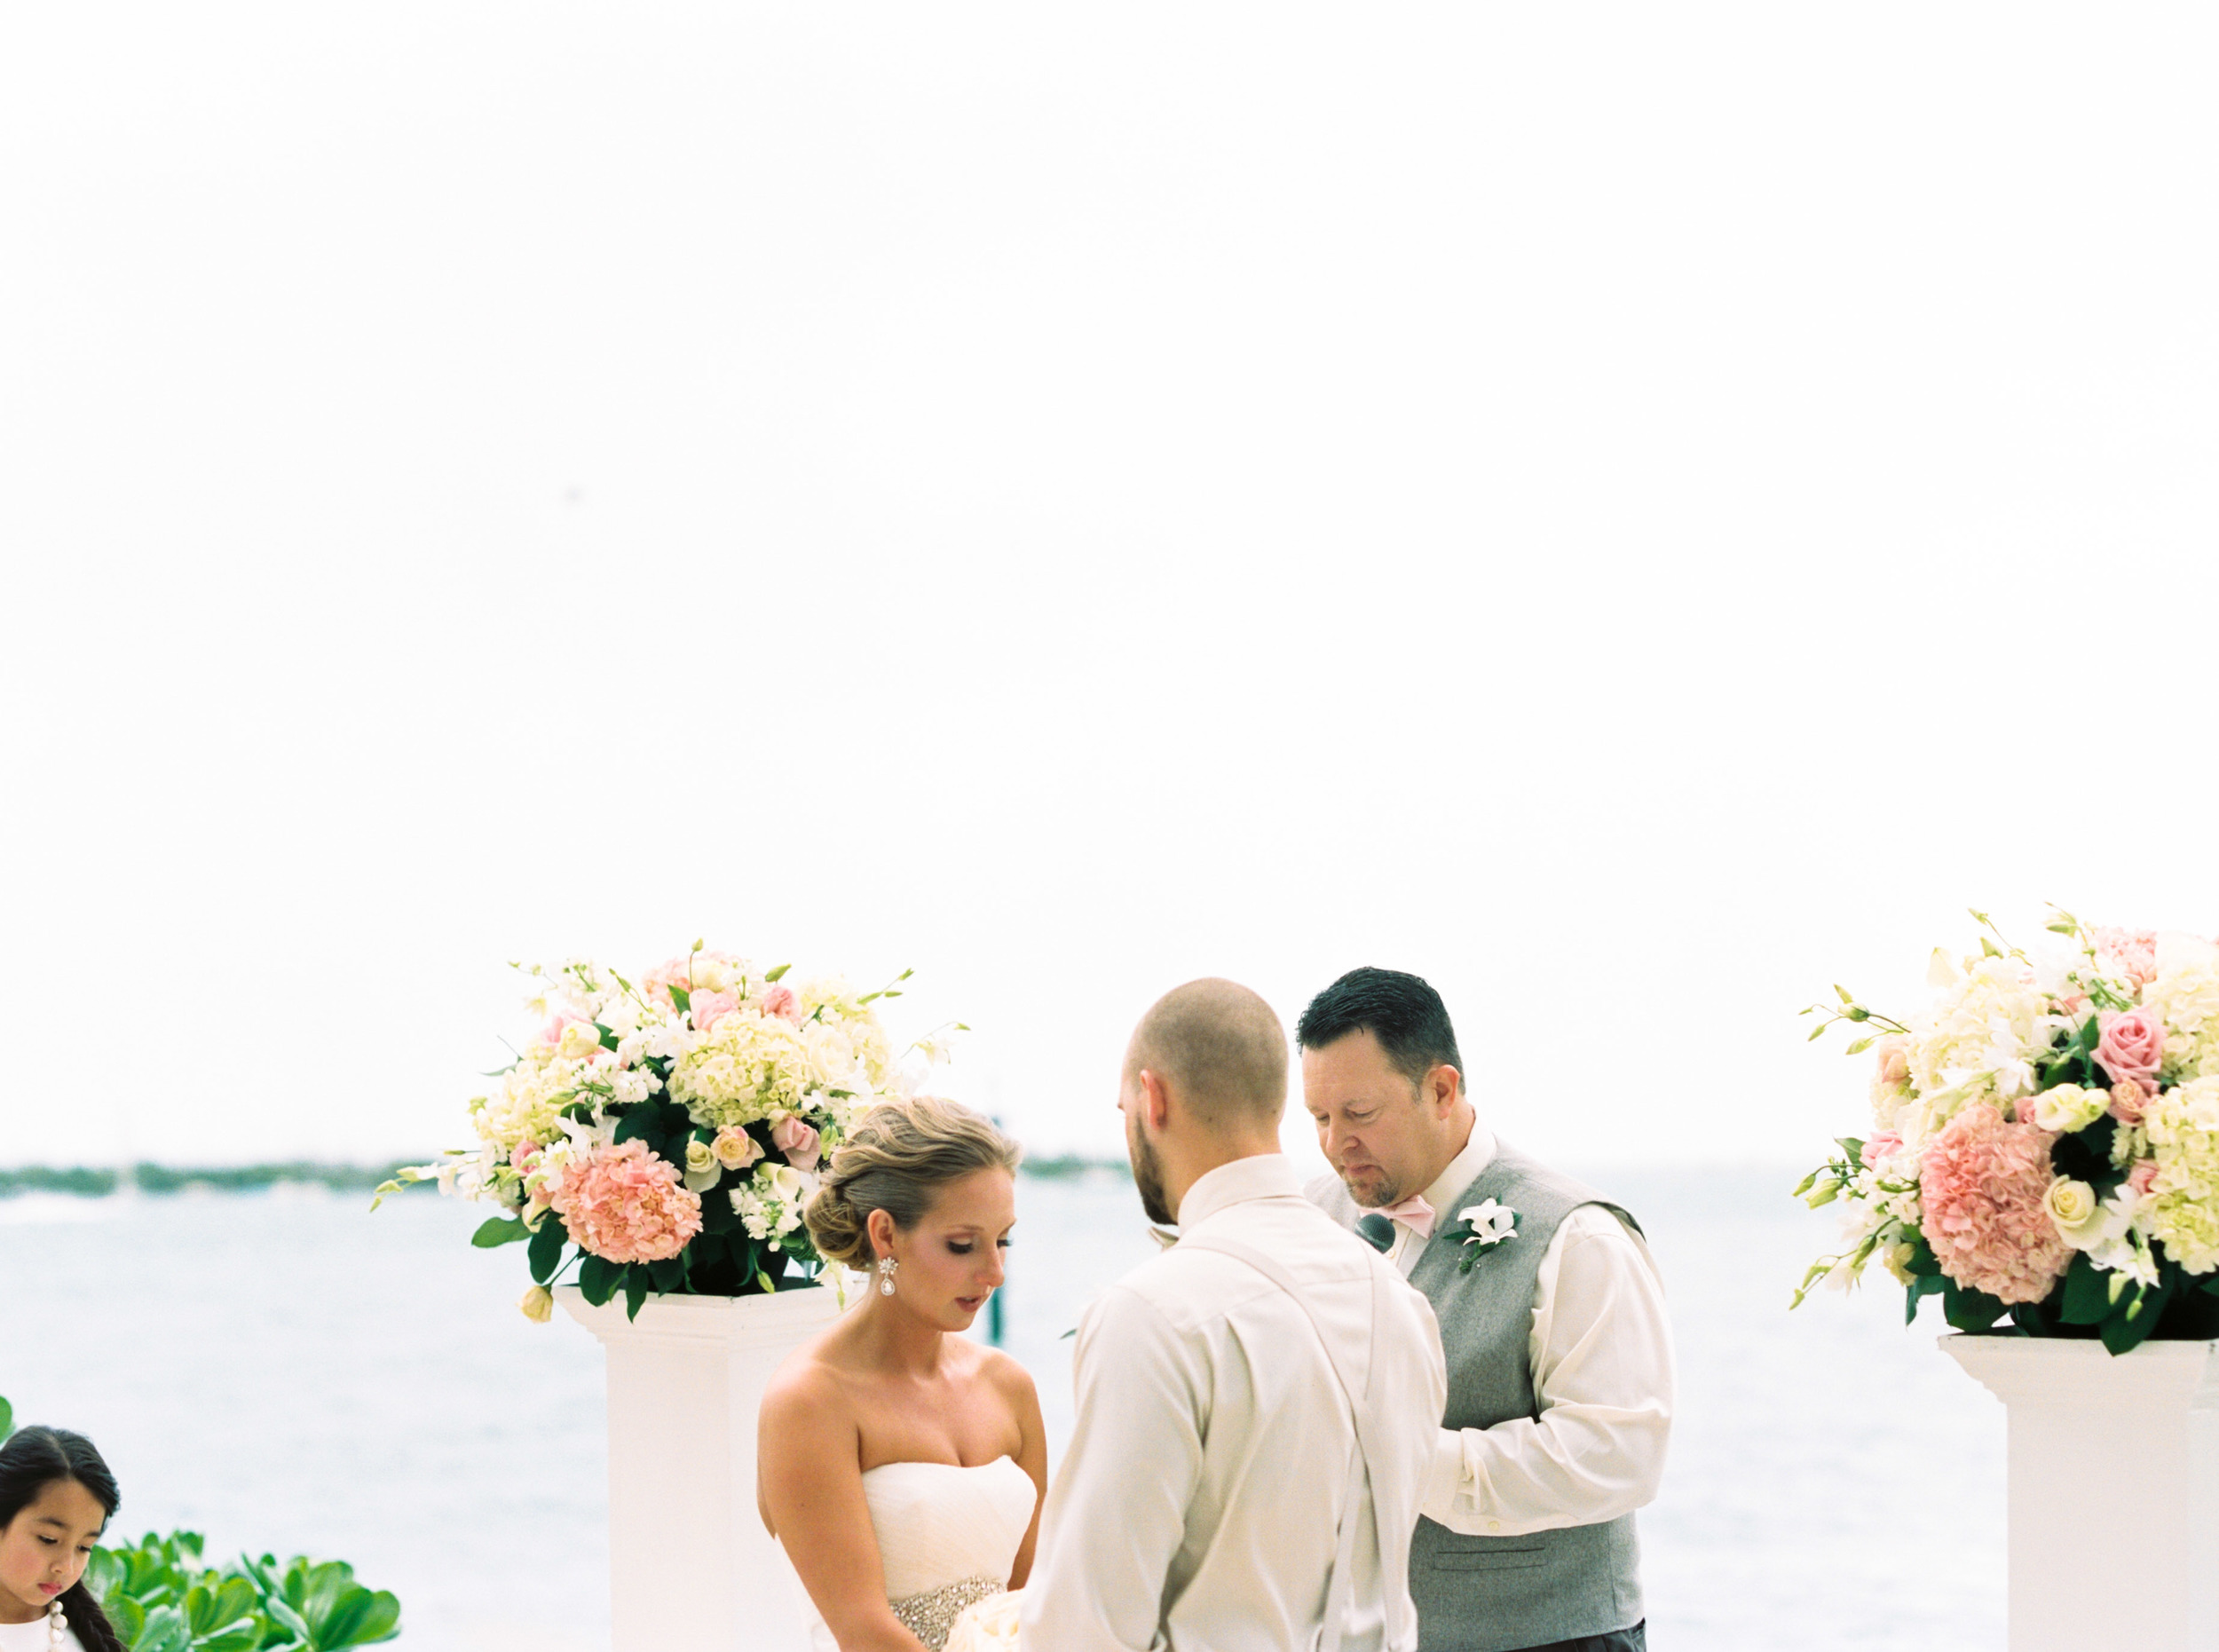 Key West Florida Wedding Film Photographer Photovision Chicago Wedding Photographer 24.jpg